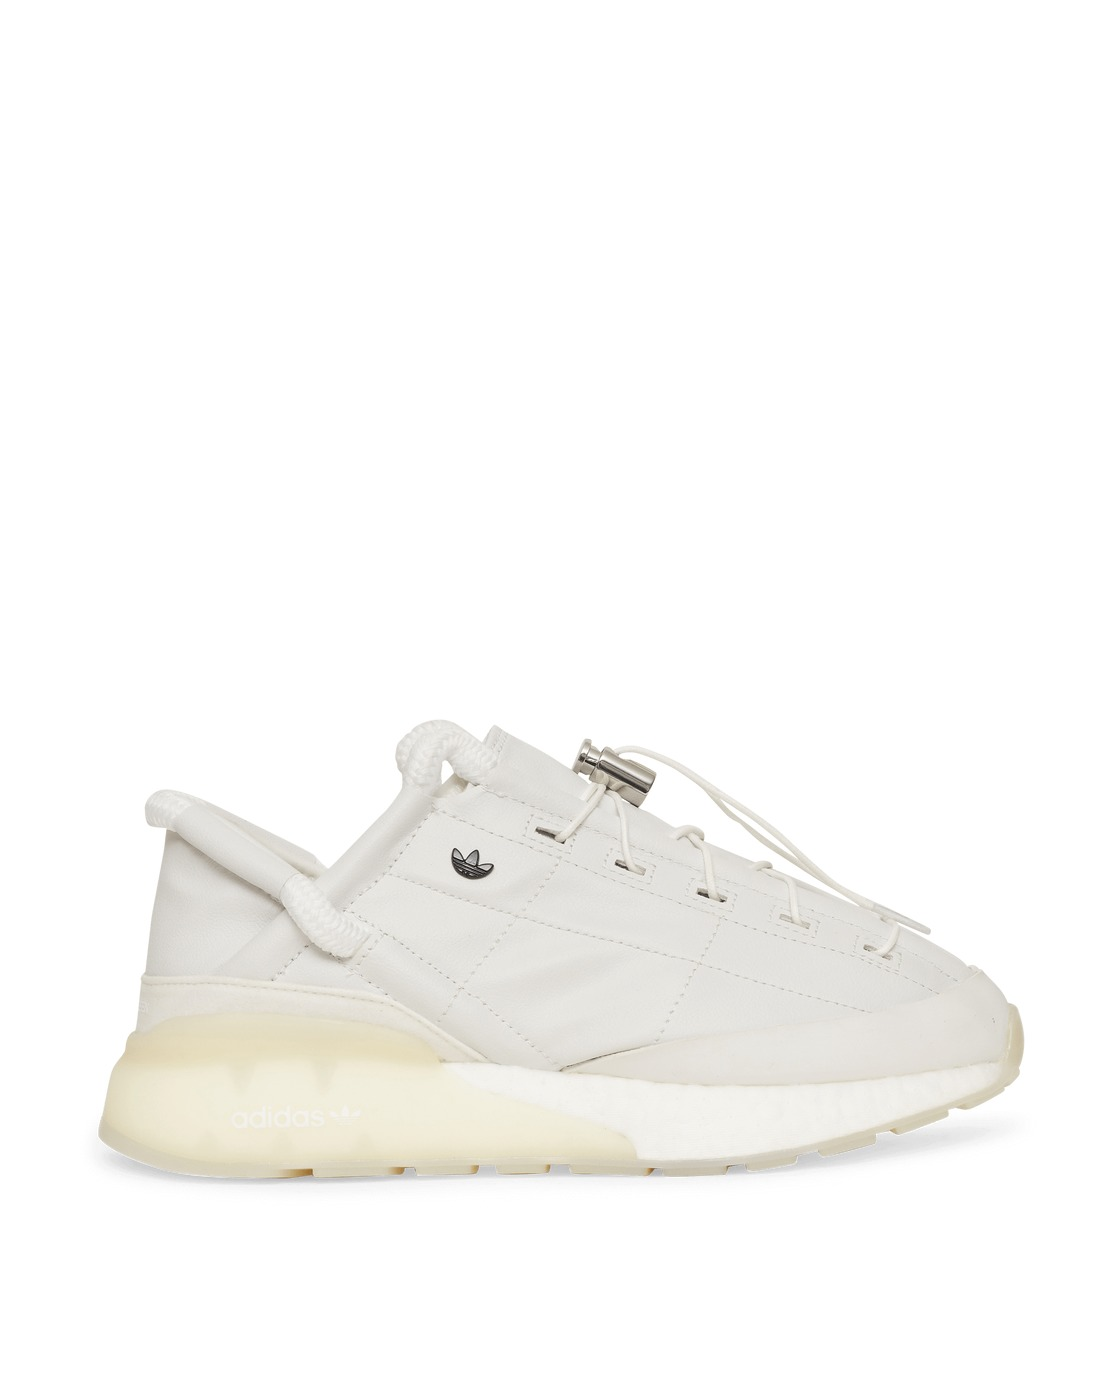 Photo: Adidas Originals Craig Green Zx 2k Phormar Ii Sneakers Chalk White/Chalk White